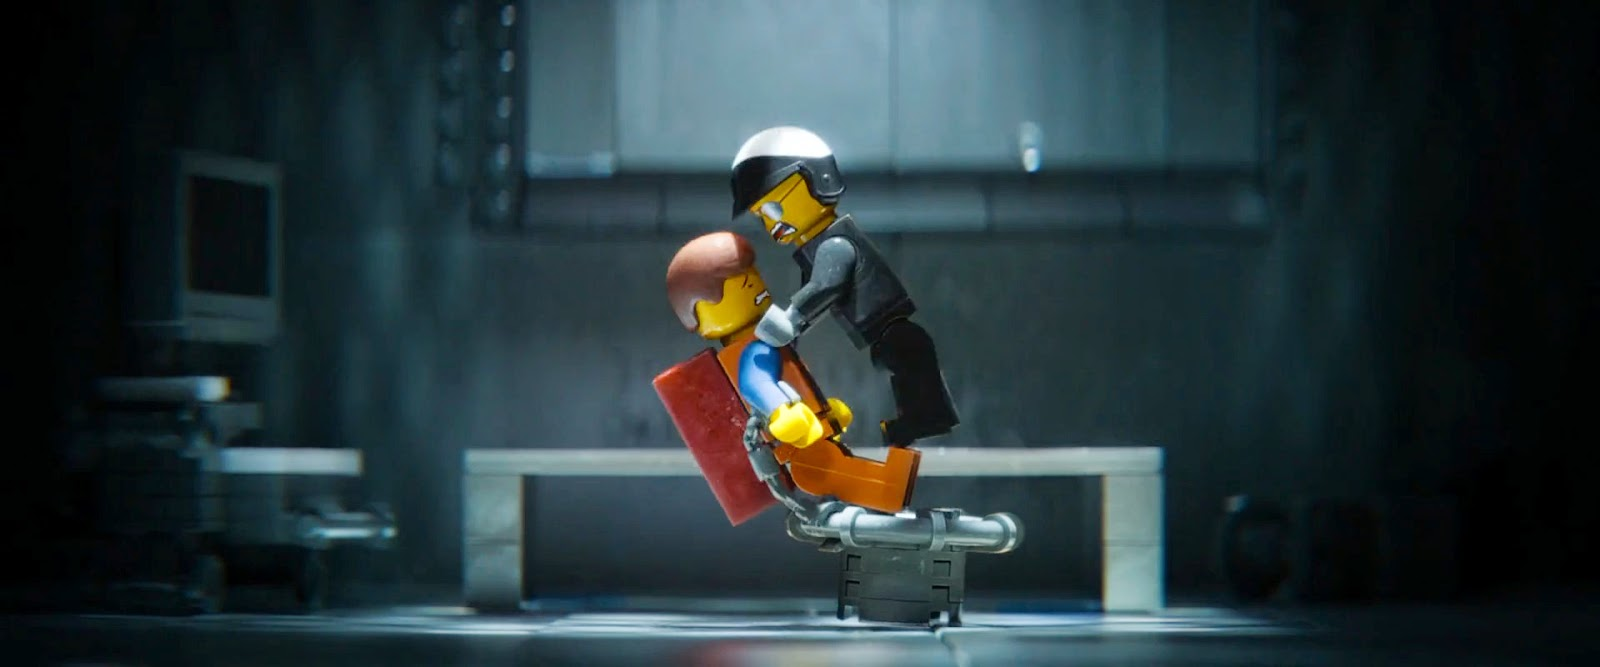 The Lego Movie (2014) S2 s The Lego Movie (2014)